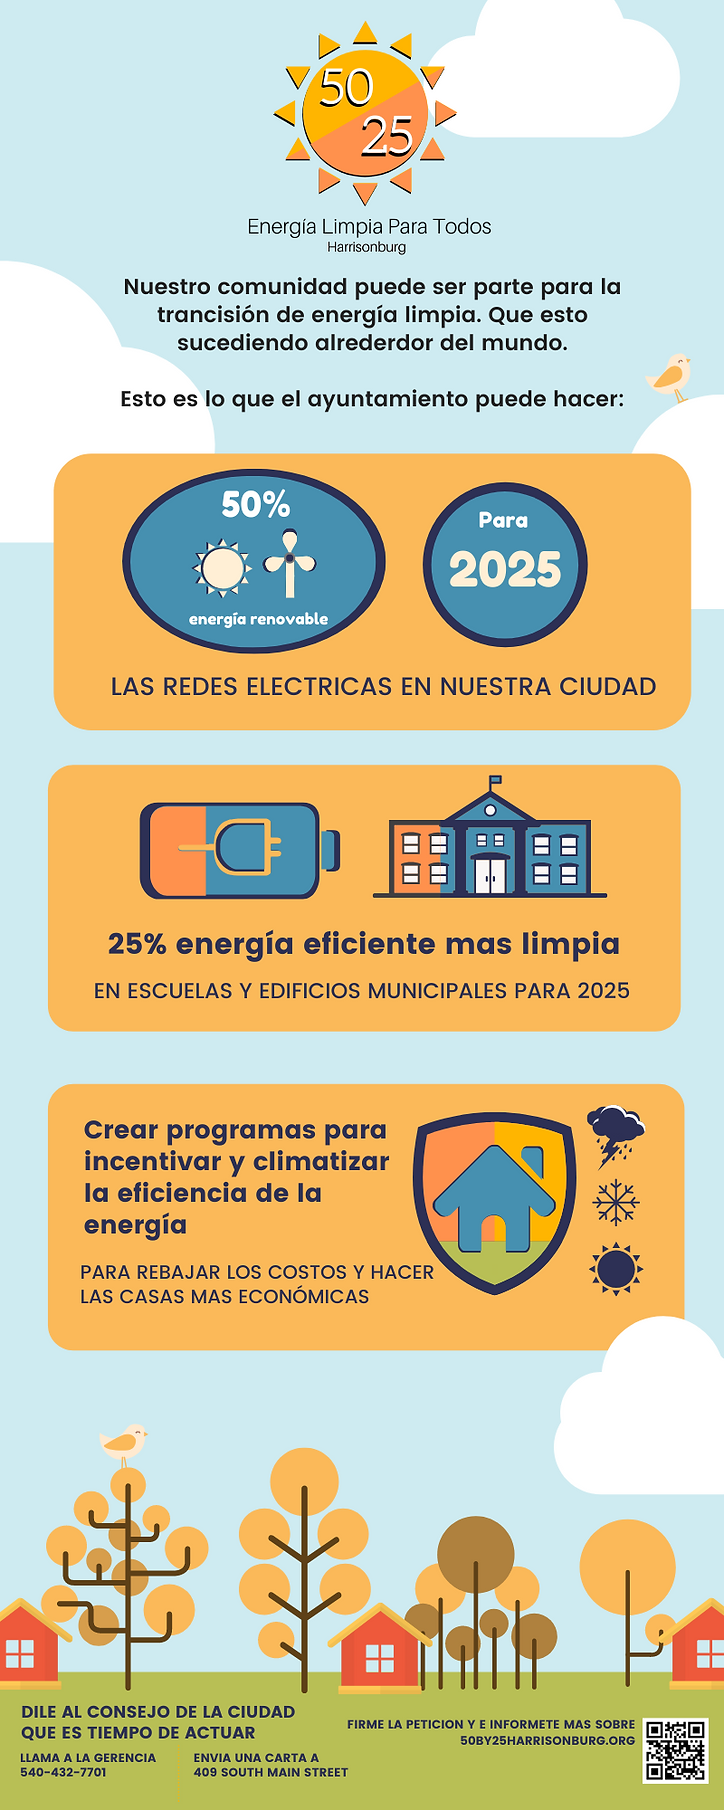 50 by 25 Infographic Asks Spanish Feb 11